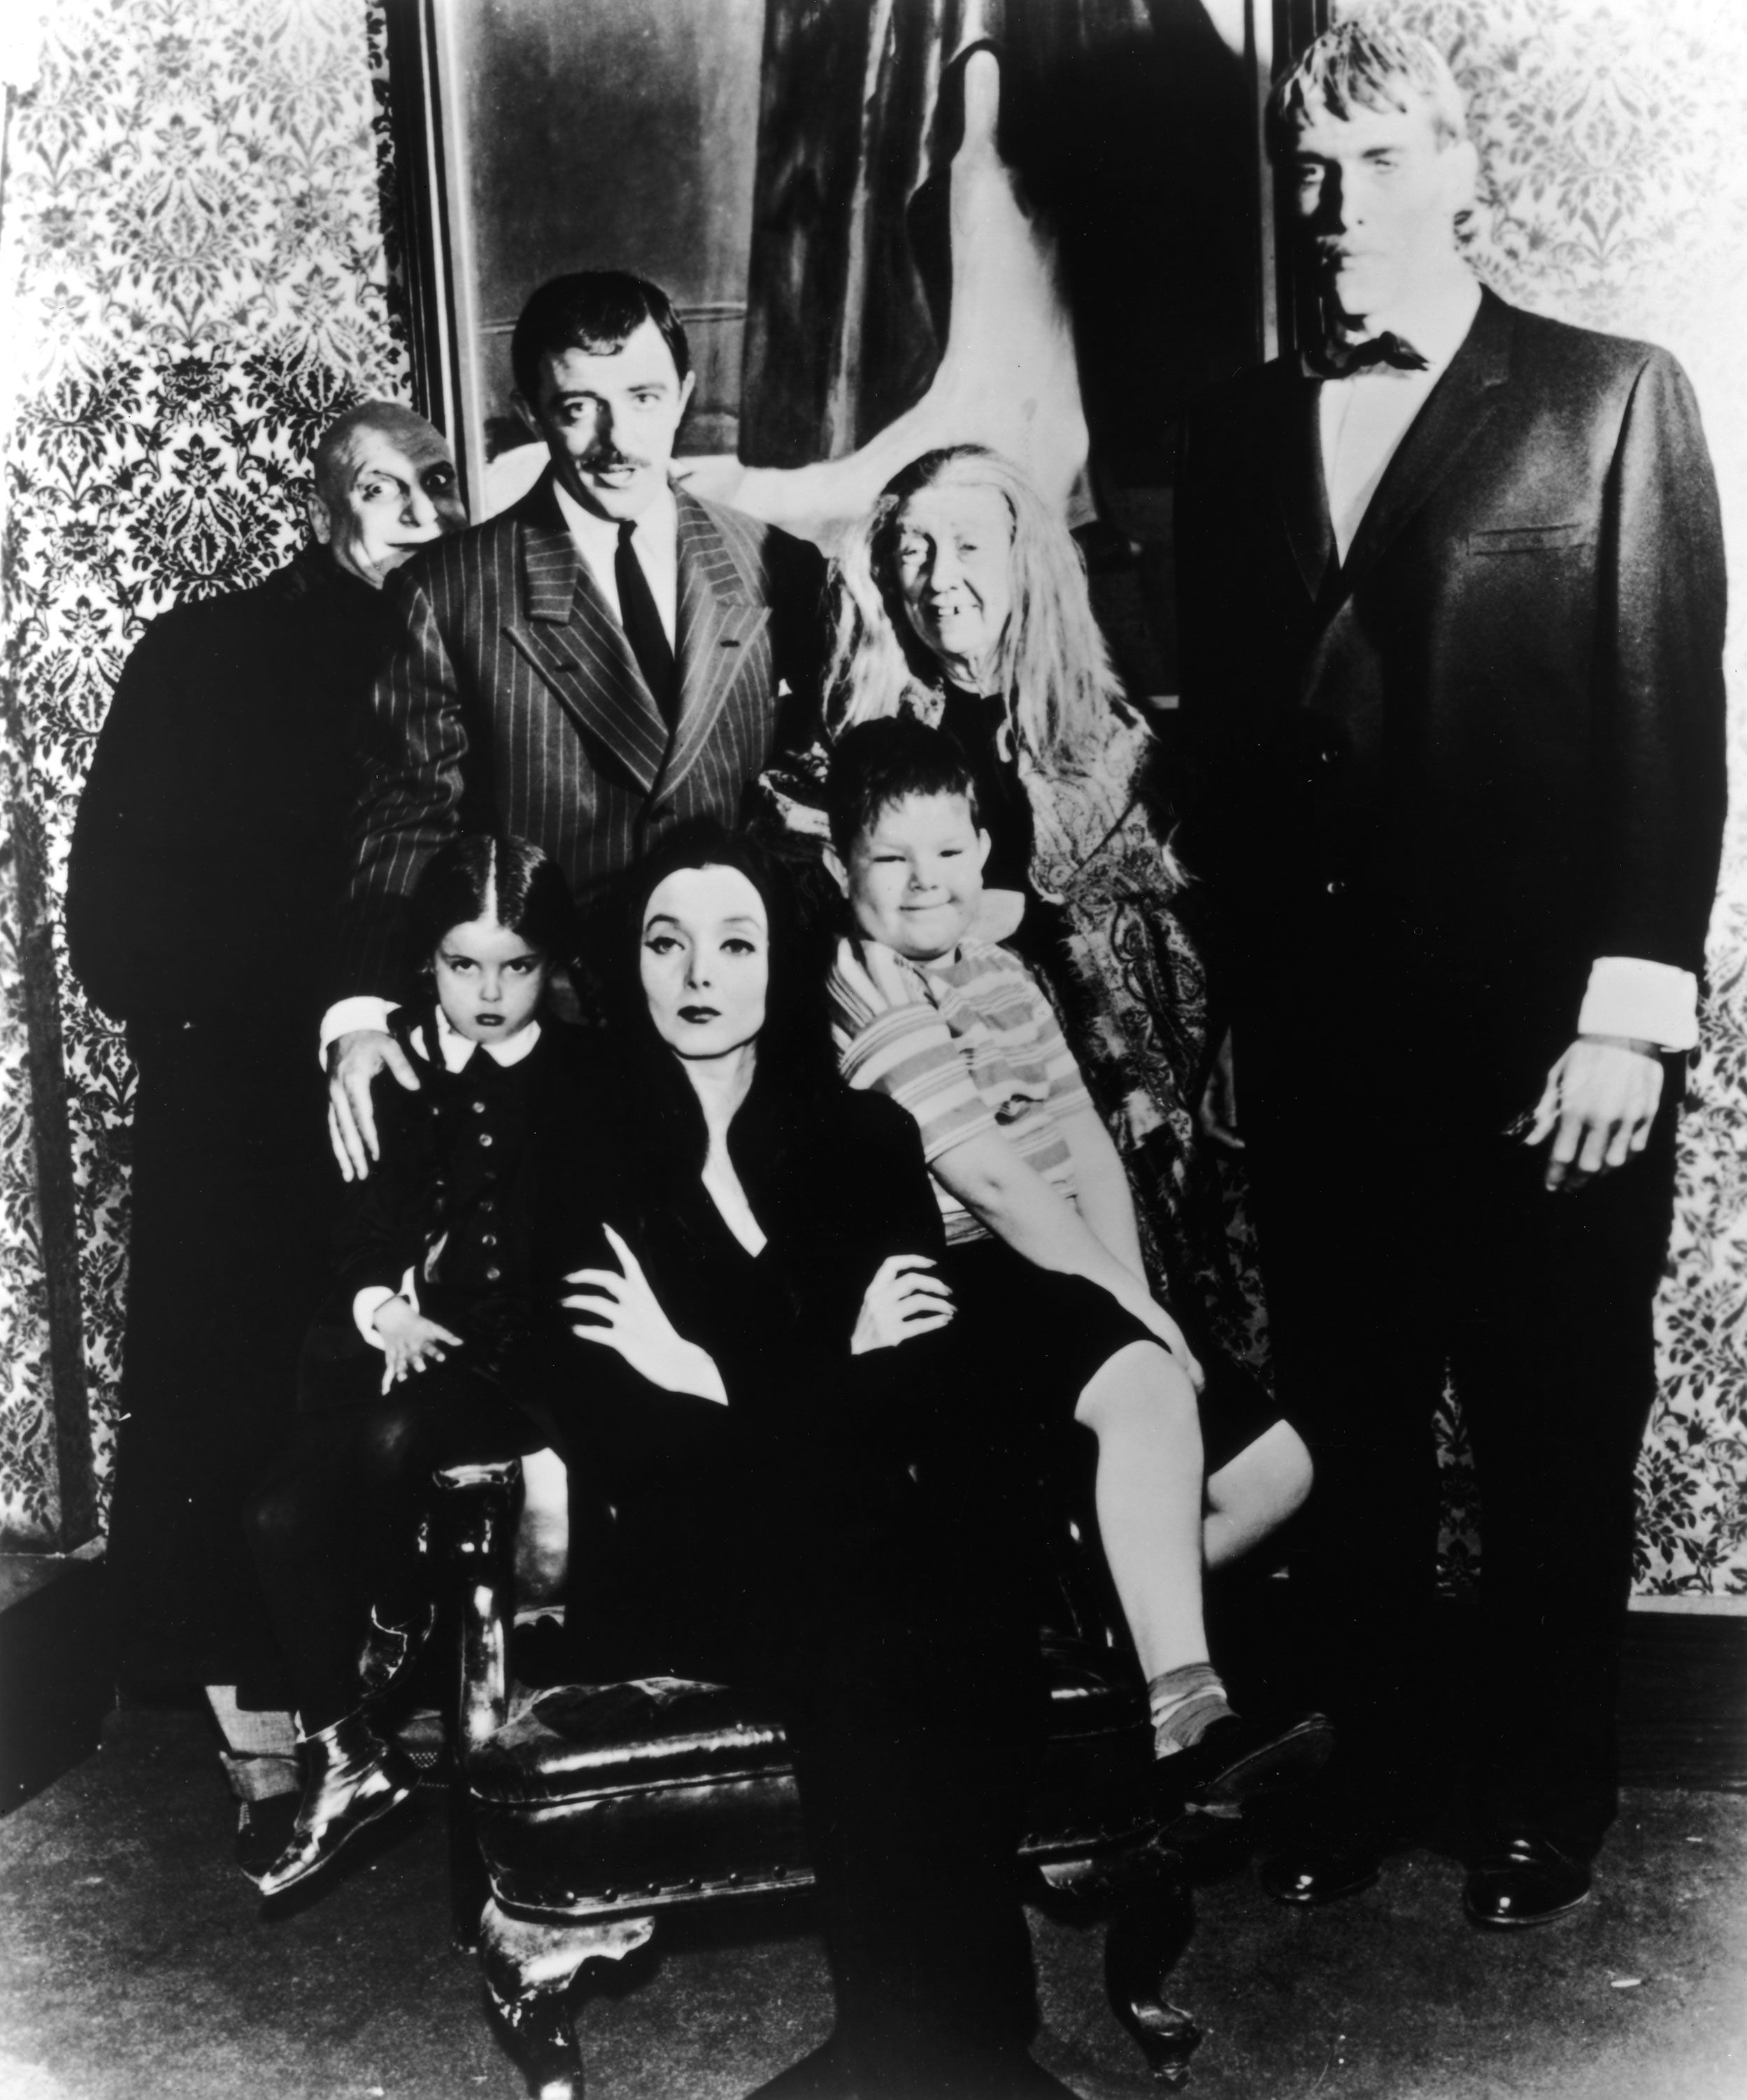 Uncle fester the addams family pinterest - The Addams Family Debuted The Same Wk As The Munsters And Aired Its Final Episode The Same Wk As The Munsters Since It S Tv The Darker Humour Of The One